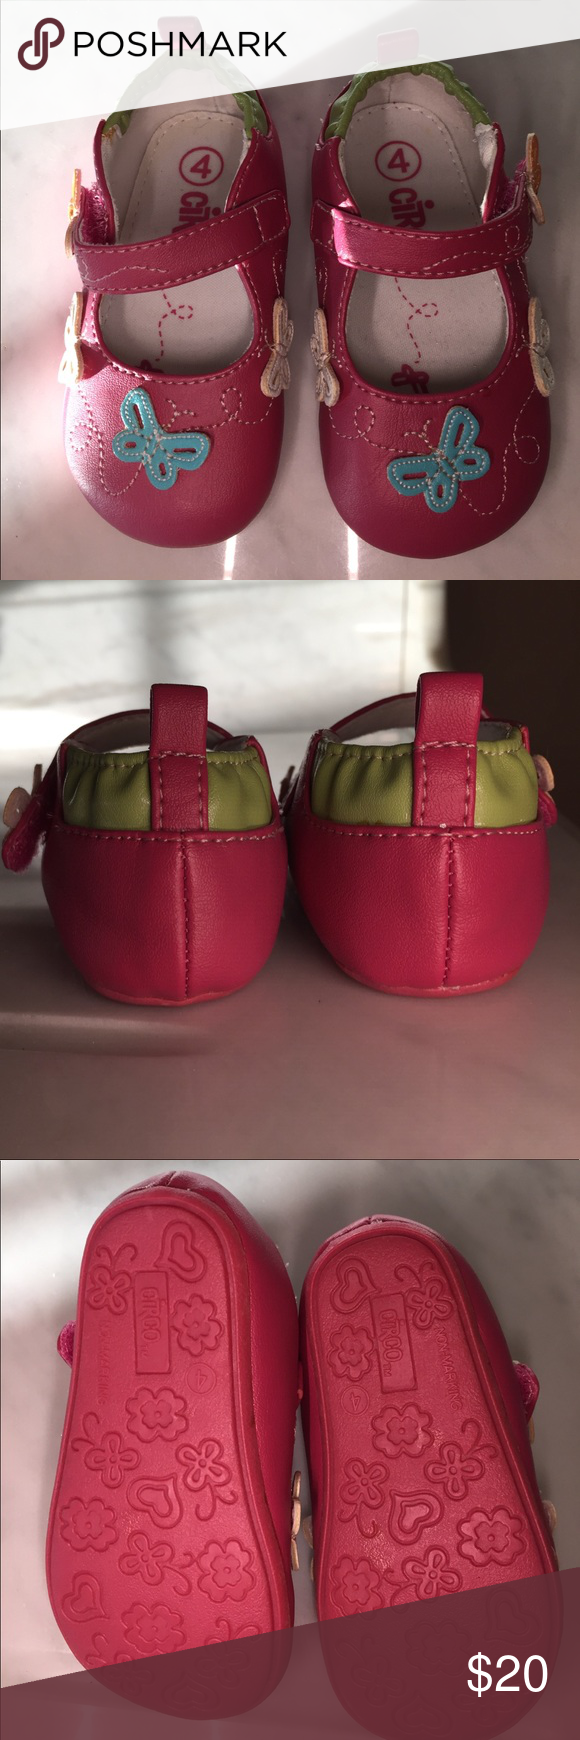 New girls shoes with velcro and butterflies These are adorable and perfect for your little girl. Manmade materials. Fuchsia, Lime green, orange, white and Aqua blue make for a great combination. Shoes Dress Shoes